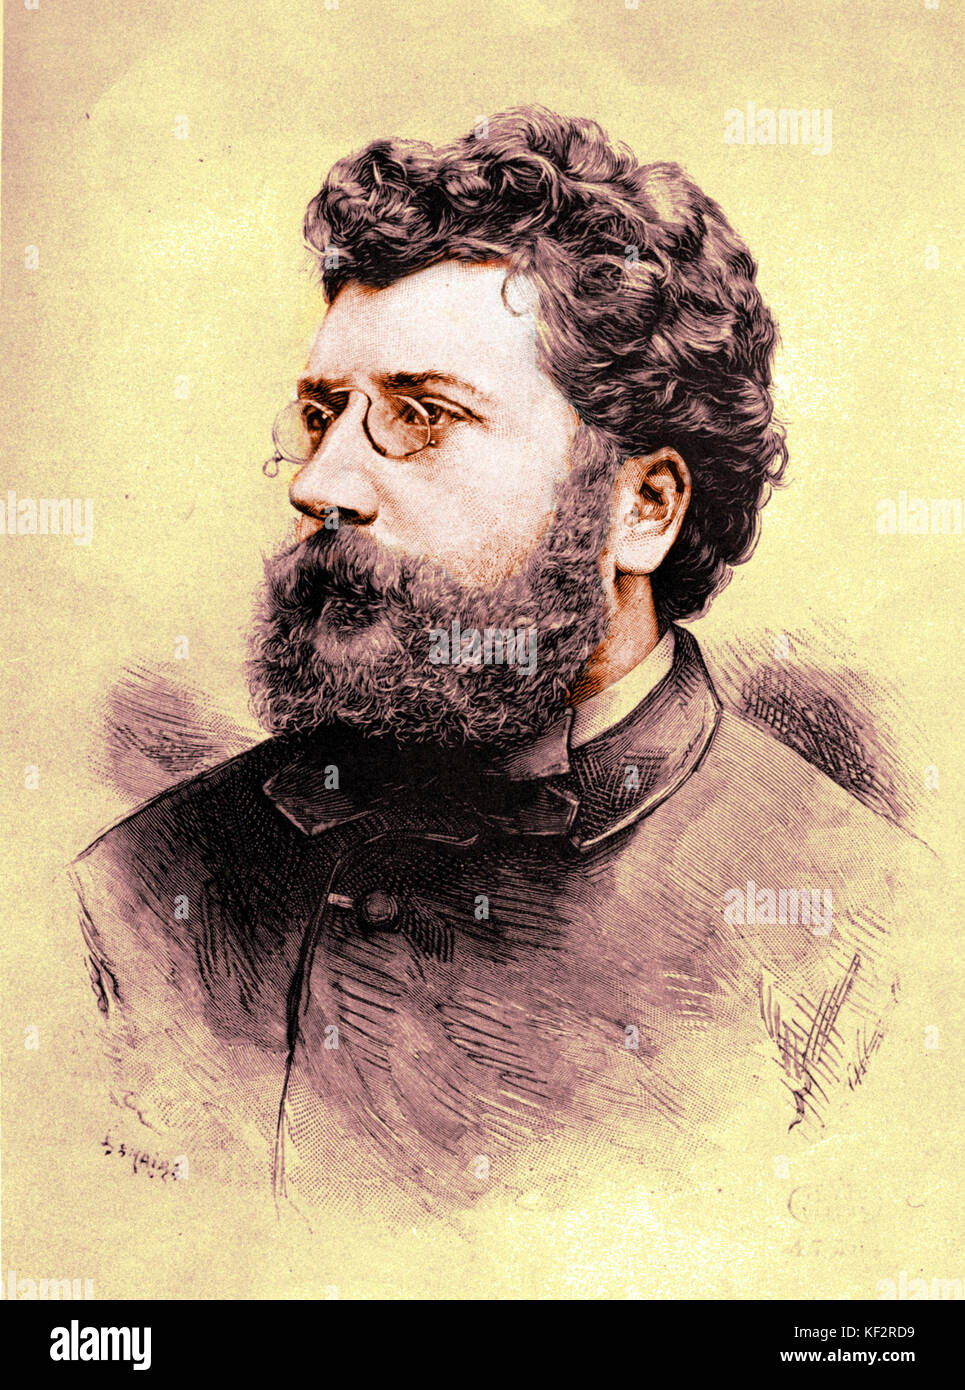 a biography of georges bizet a french composer Like many music-lovers, i regard bizet as the greatest opera composer who ever lived, behind mozart, and the greatest french composer who ever lived, behind no one the fact that i didn't know.